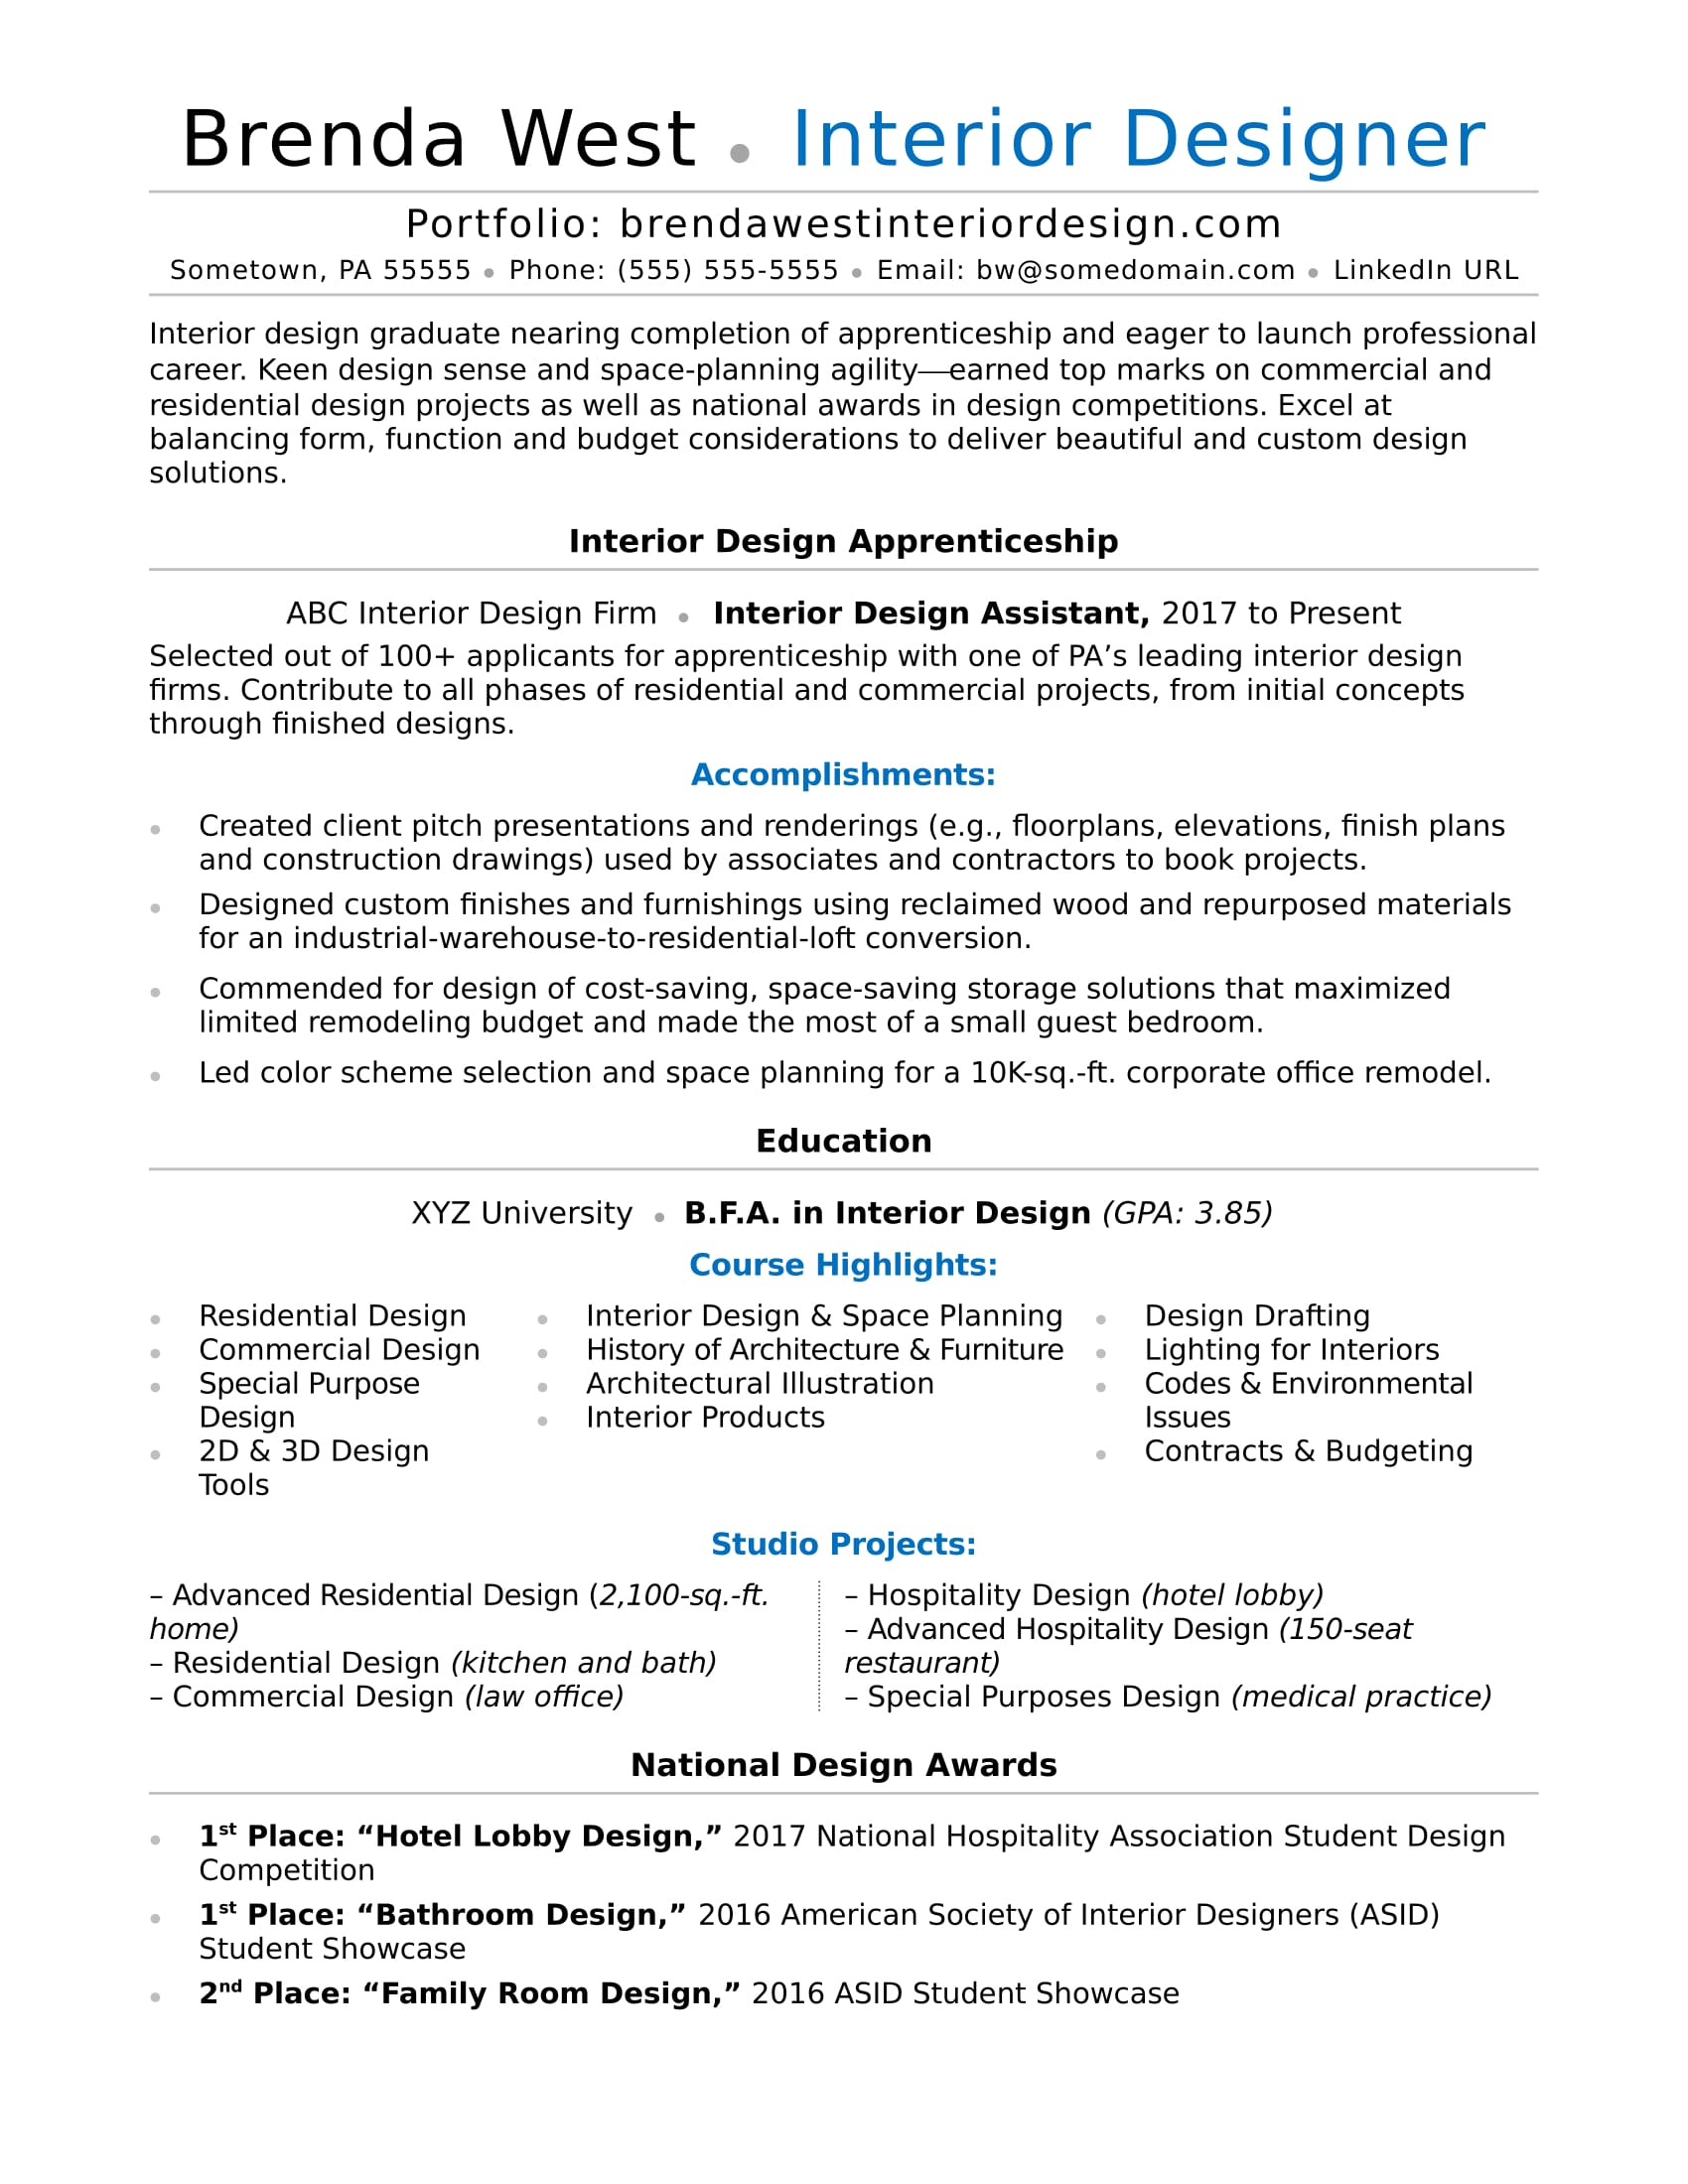 Interior design resume sample for Interior design office programming questionnaire